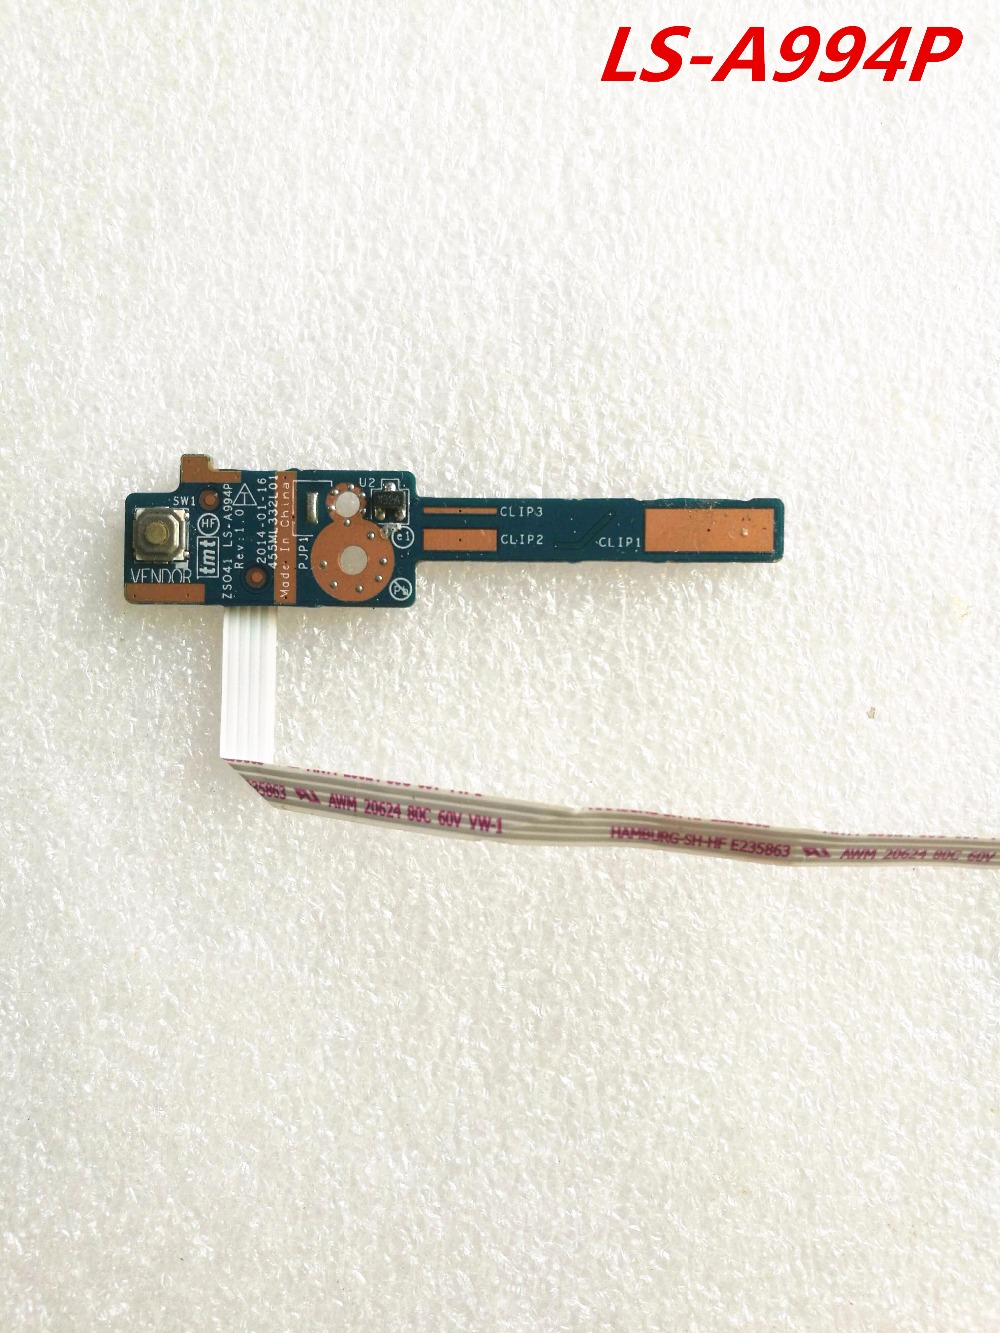 98% New Laptop Power Button Board Switch Board Switch Cable For HP Pavilion14-G 14-R 14-s G1 240 242 246 248 LS-A994P